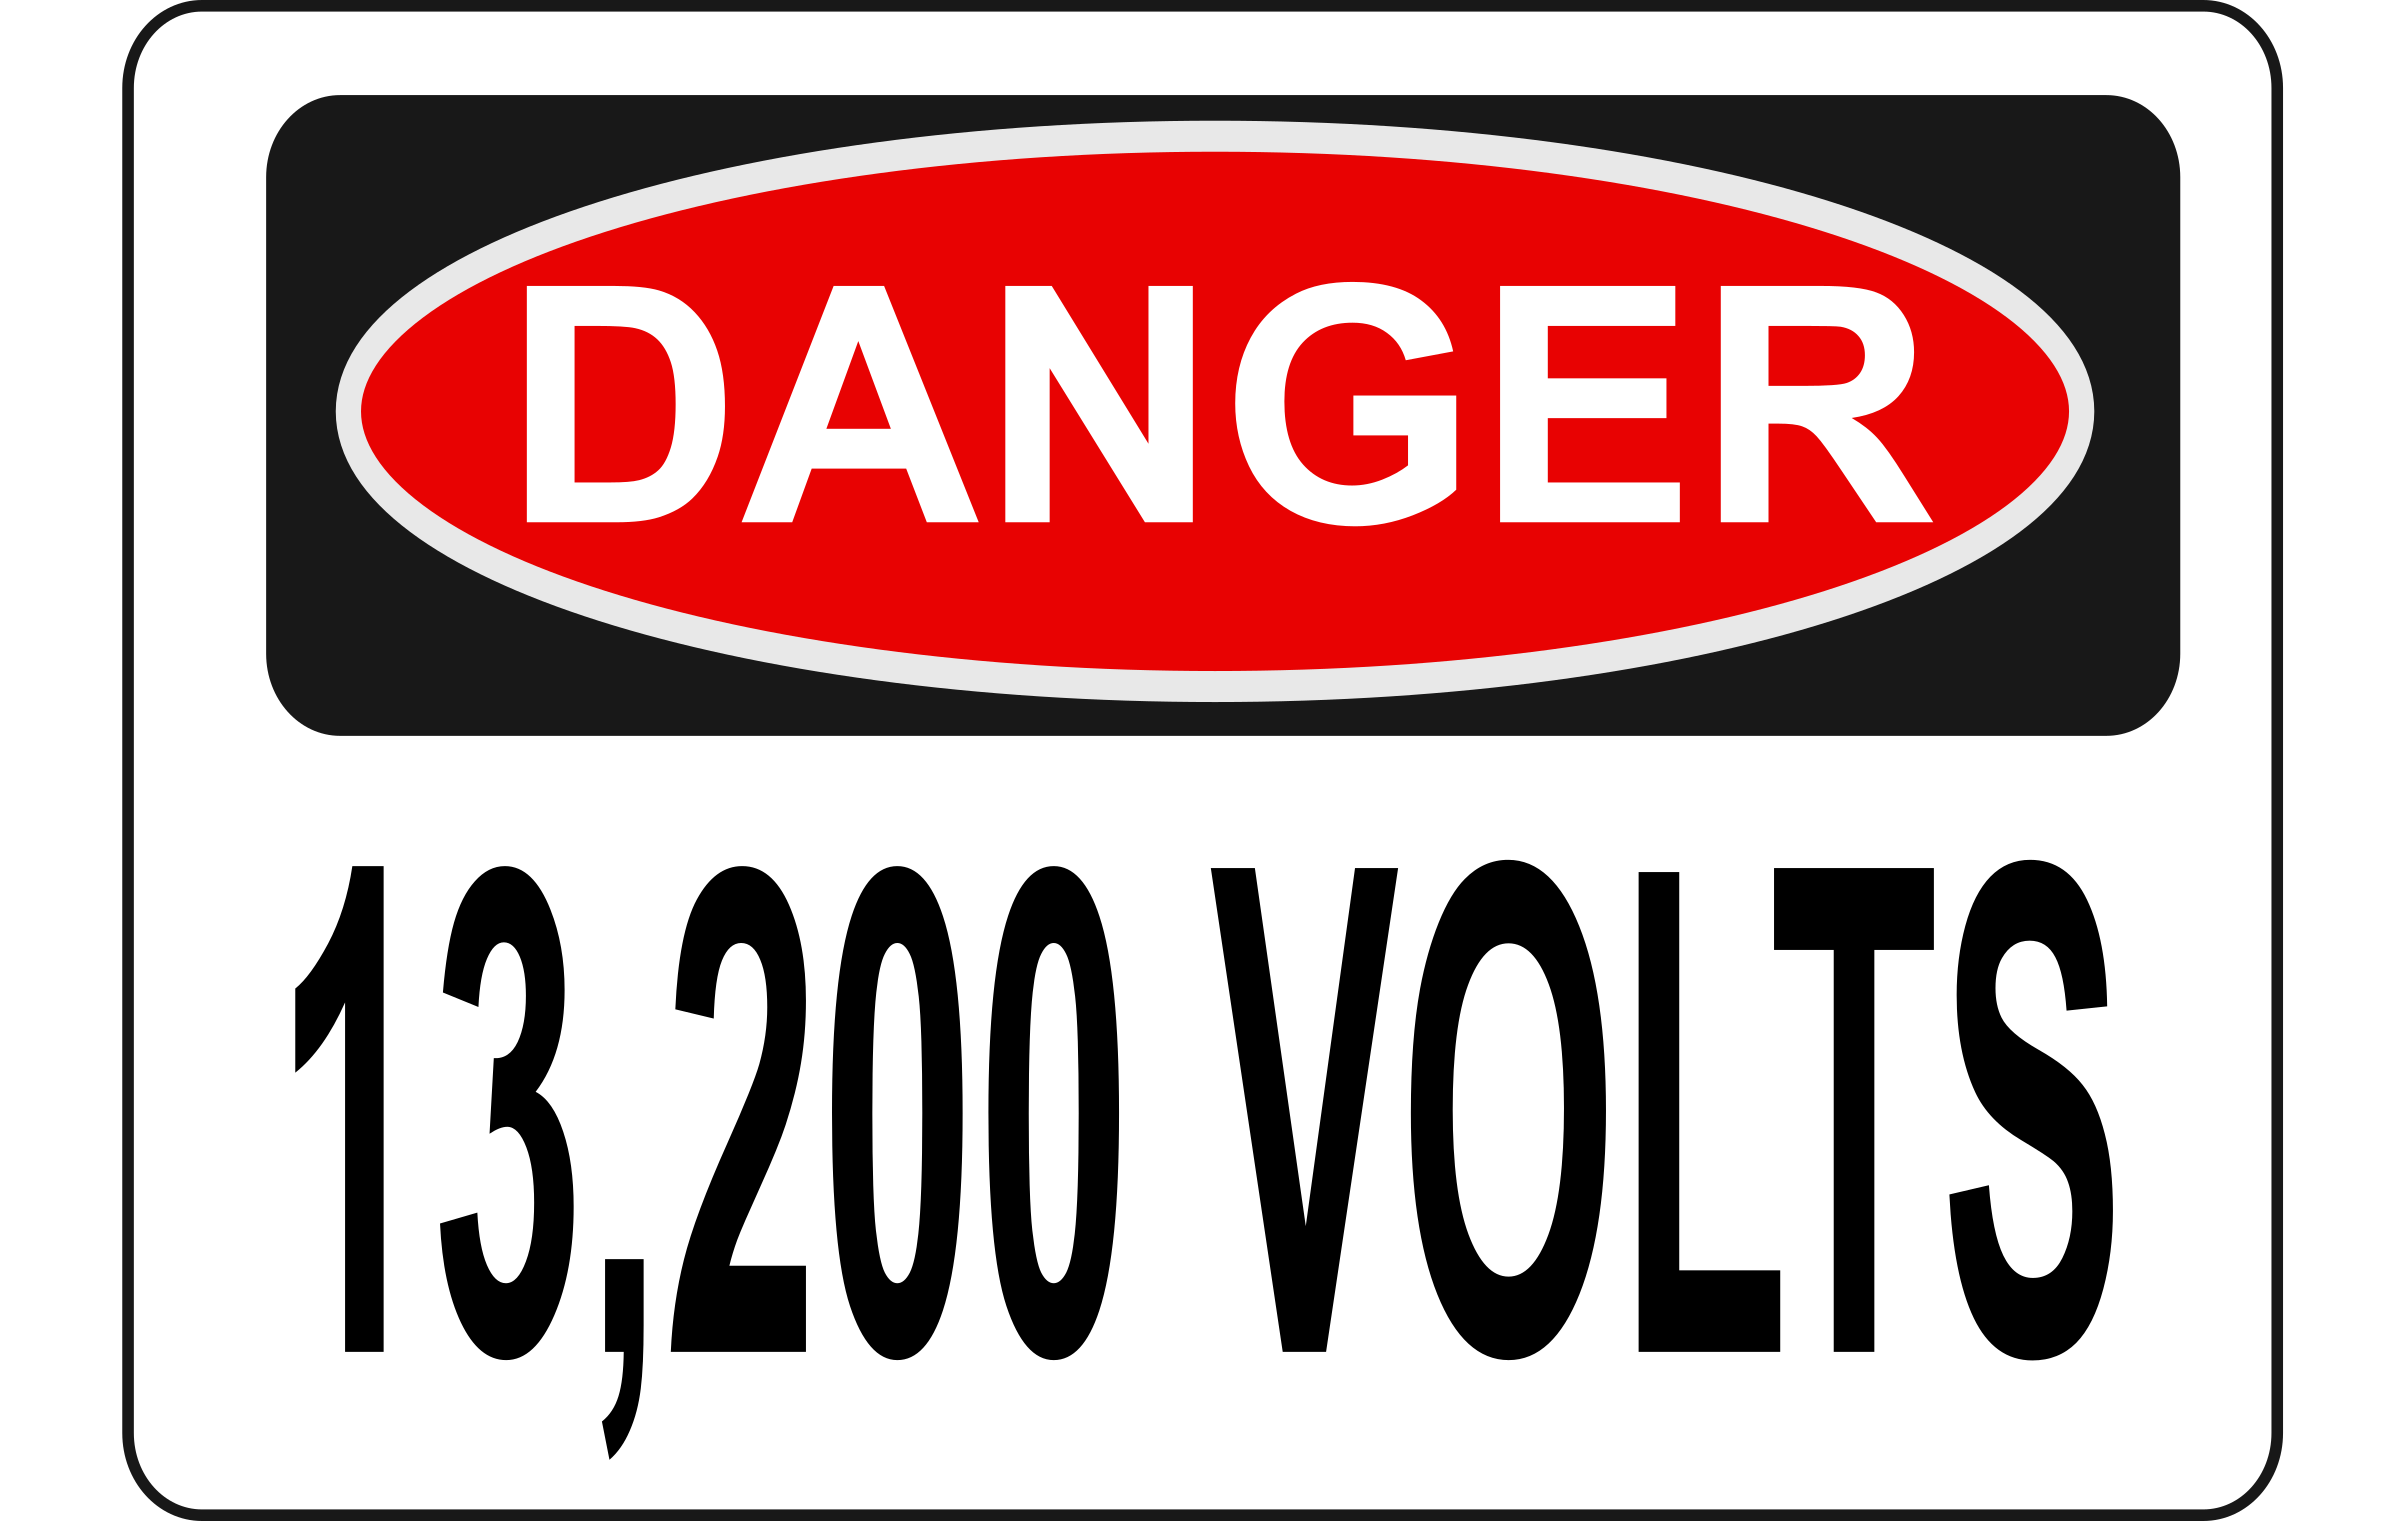 Danger - 13,200 Volts (Alt 1) by Rfc1394